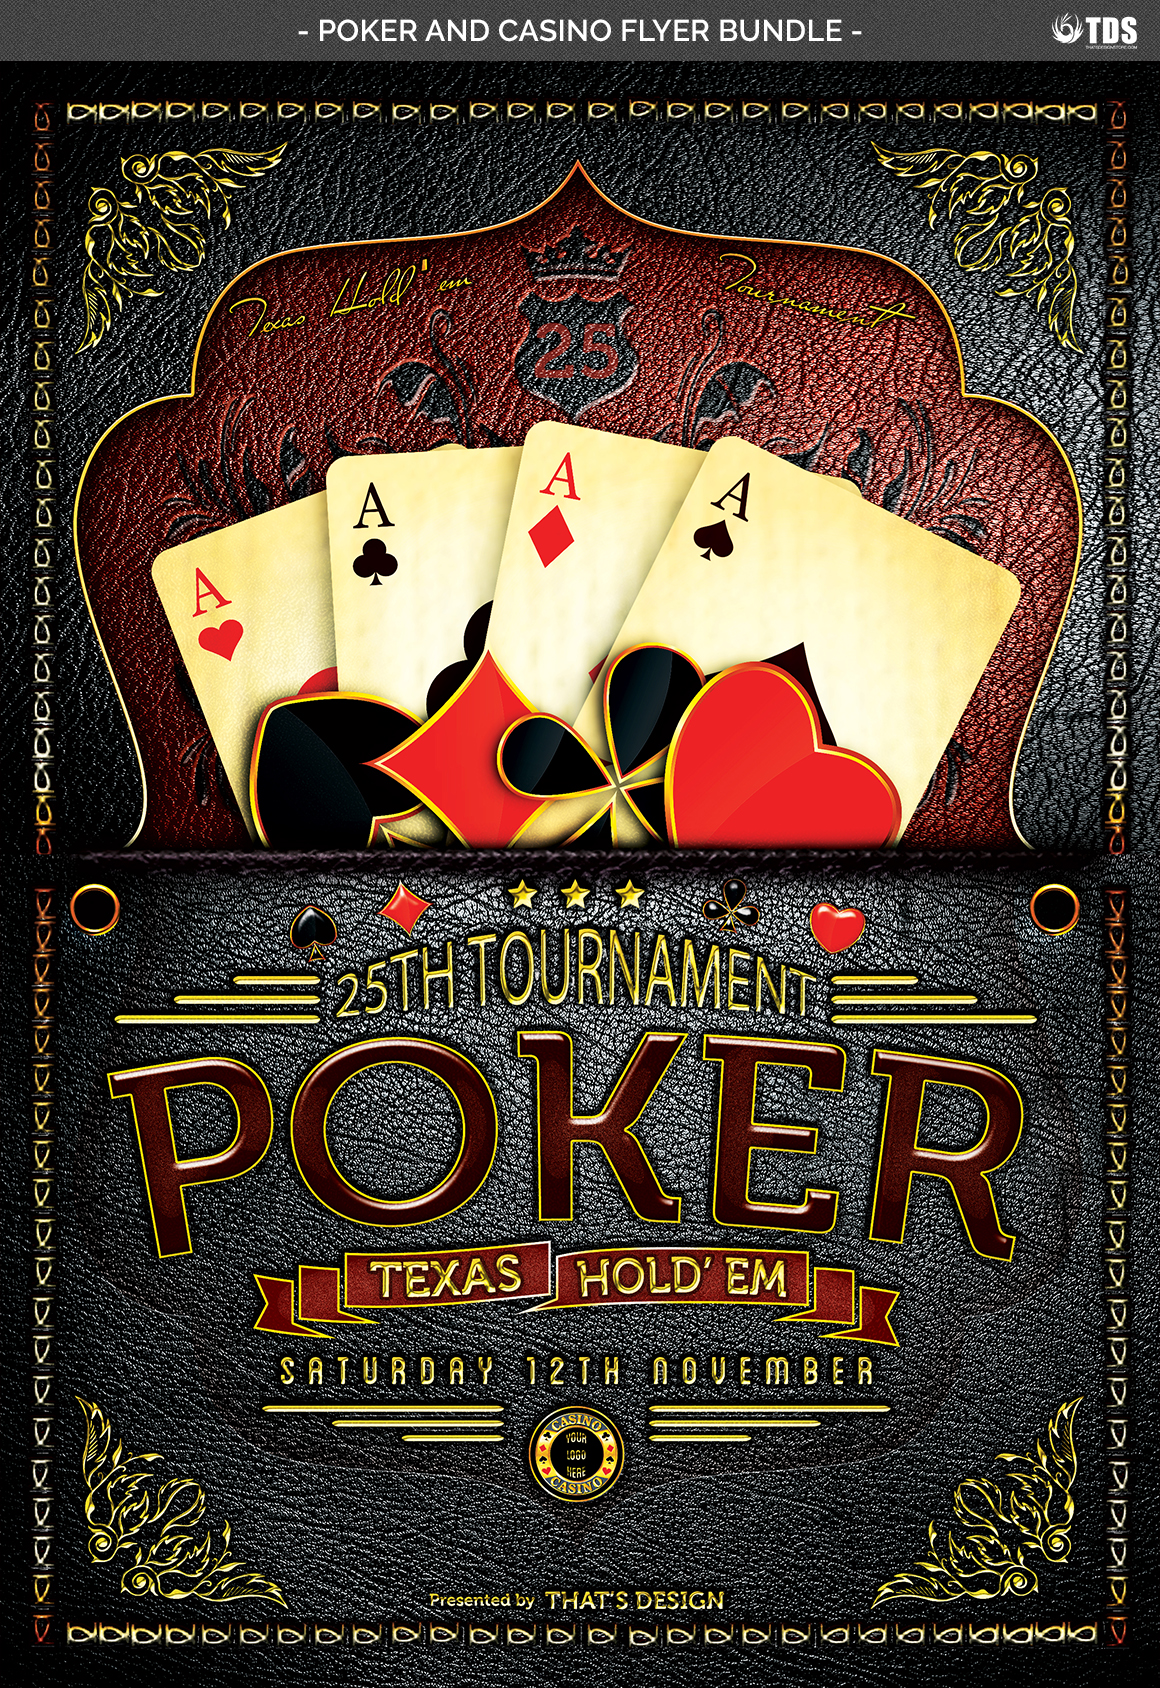 Poker and Casino Flyer Bundle example image 7